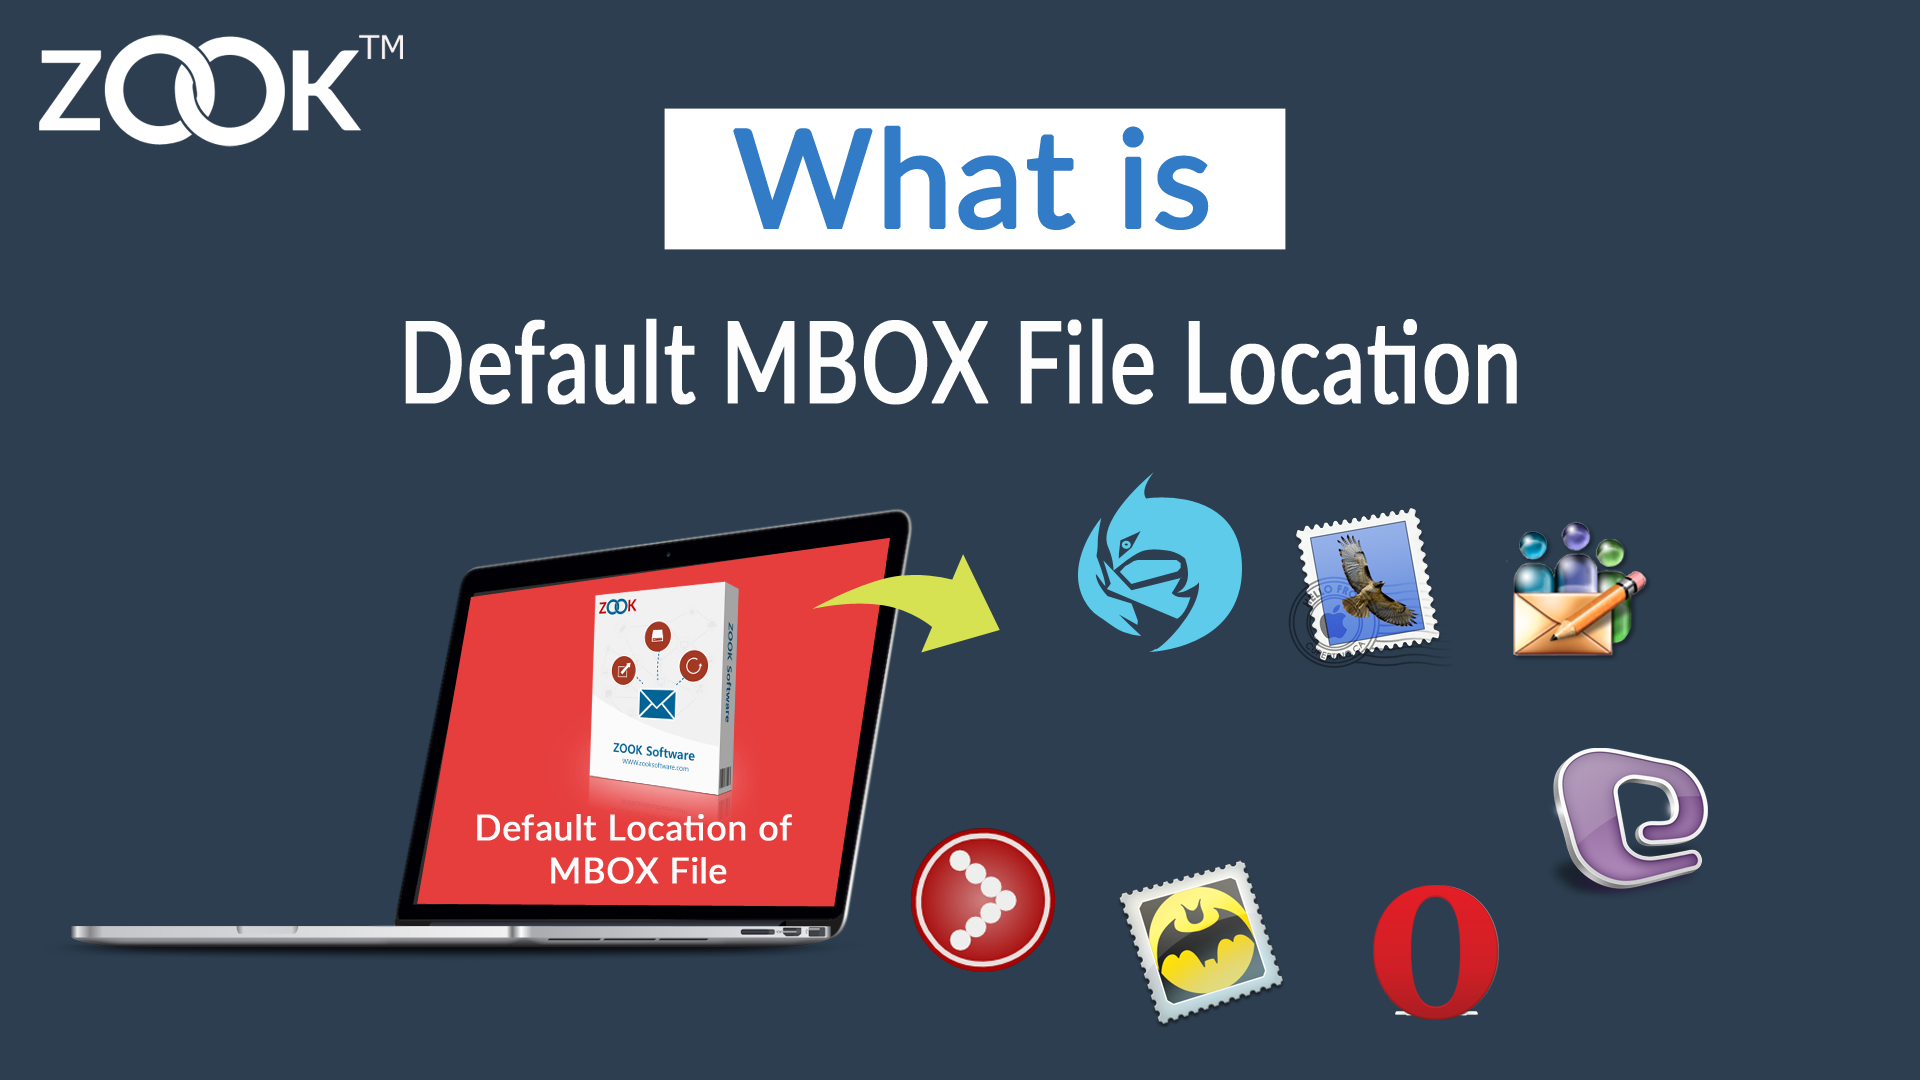 mbox file location